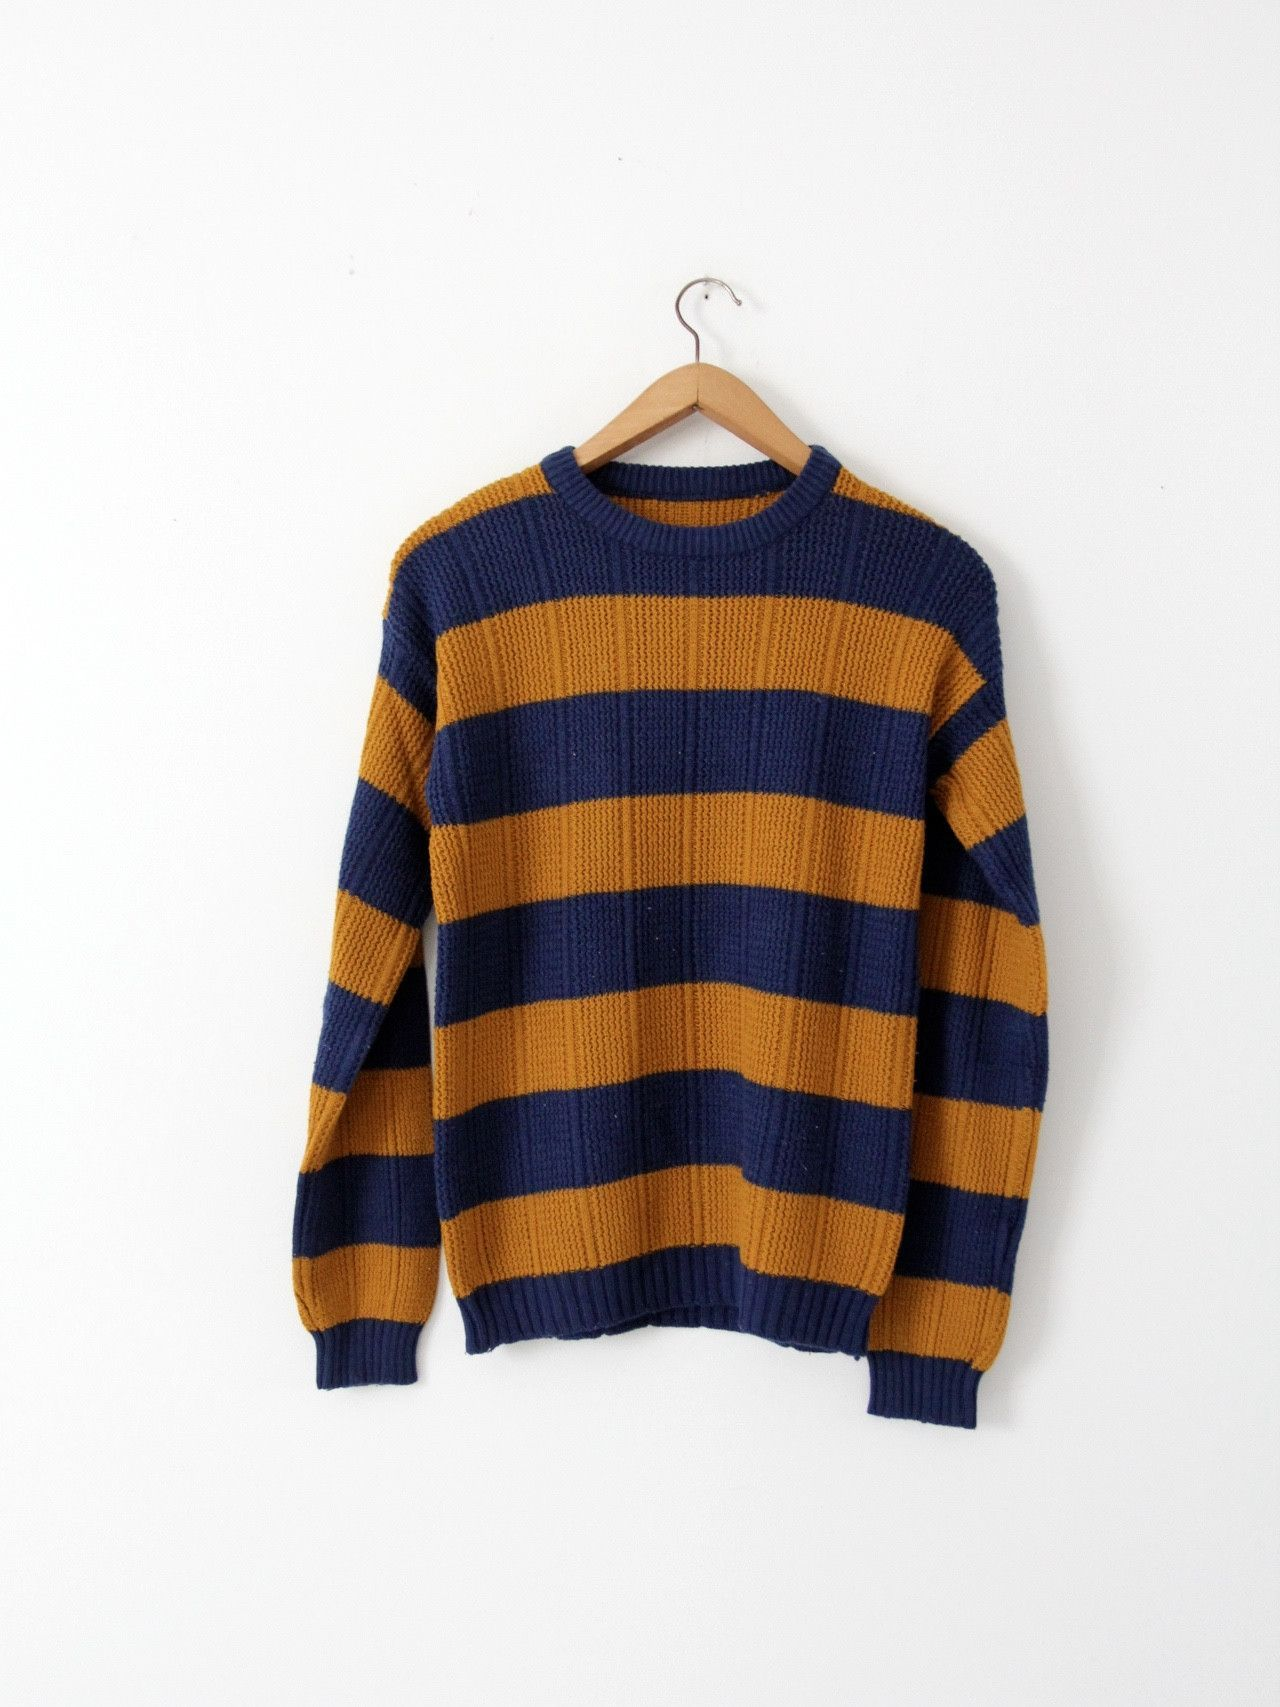 2fc9ec2706f84 A 1970s vintage striped knit sweater. The ribbed knit crew neck sweater  features bold blue and gold horizontal stripes. - blue and gold - acrylic  or cotton ...